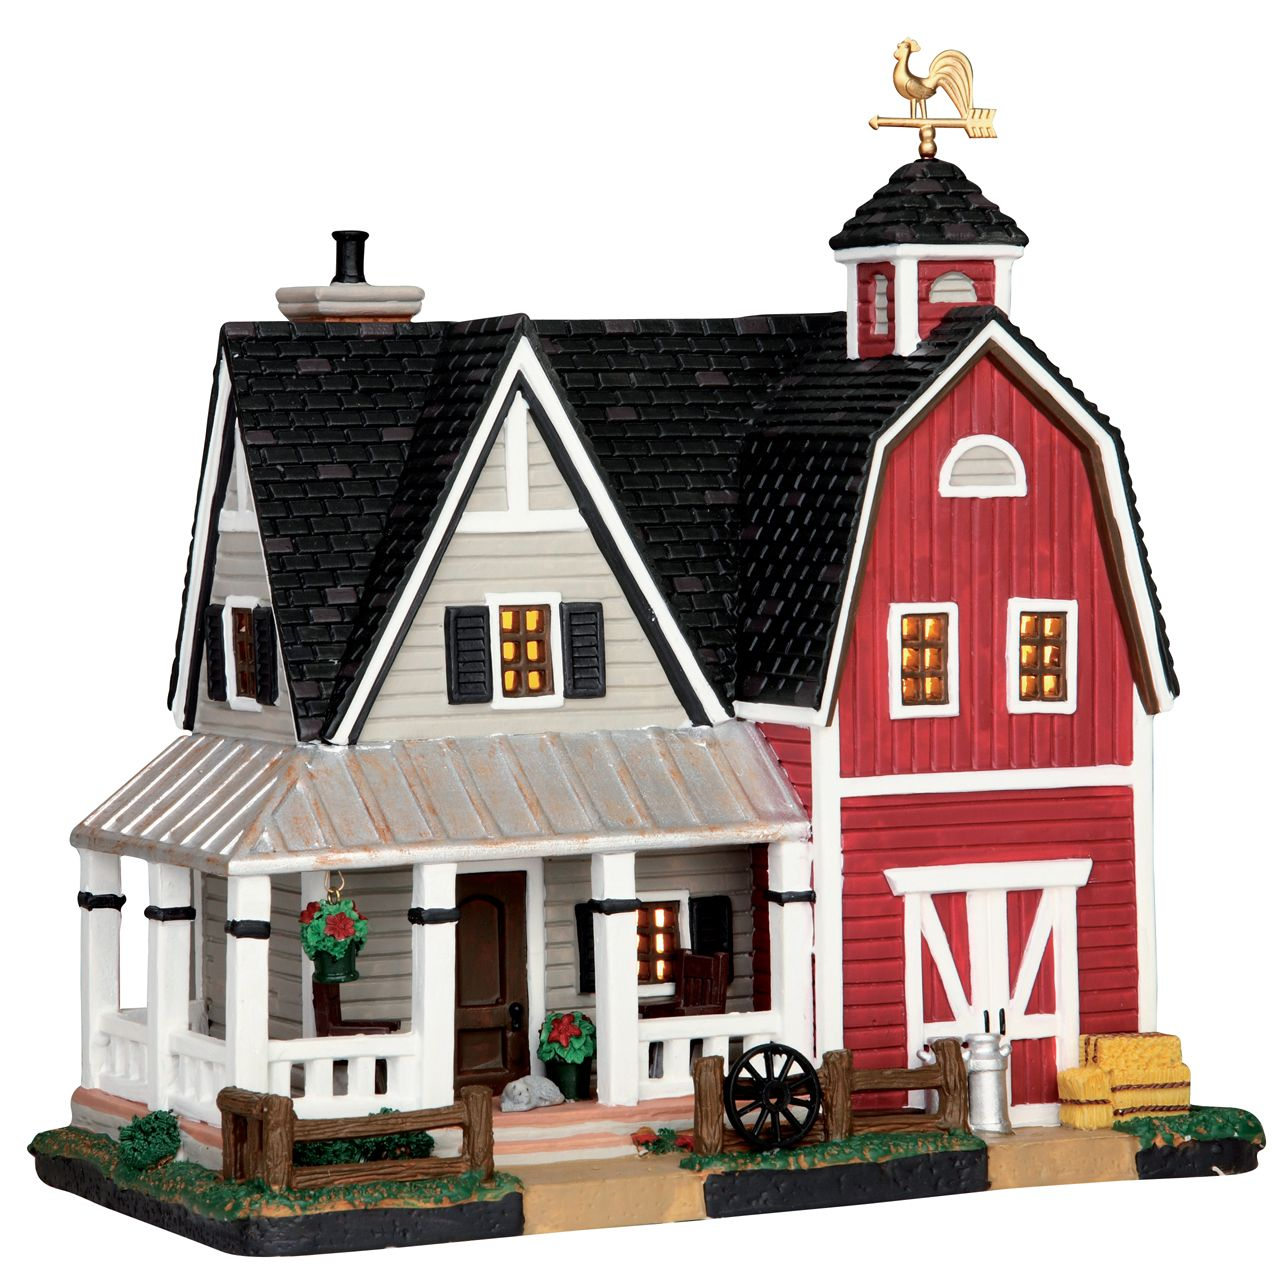 Lemax Farmhouse SKU 55951 Released in 2015 as a Lighted